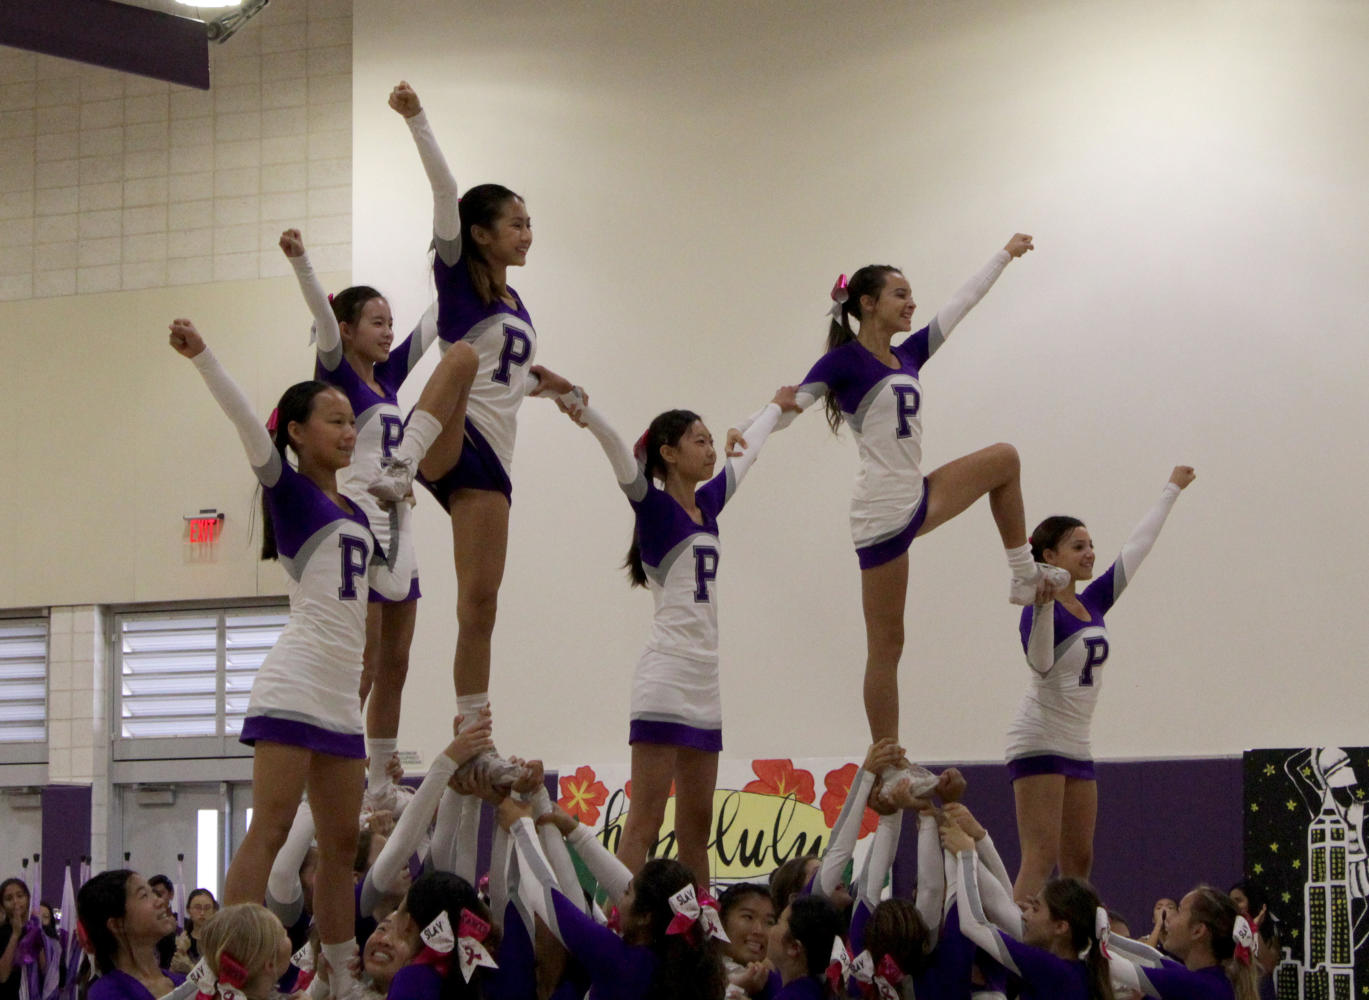 Cheerleaders Leyna Liu, Vivian Lin, Jessalyn Nguyen, Mary Lu, Ryan Aguilar and Yarden Gilat hit the mark in their final formation.